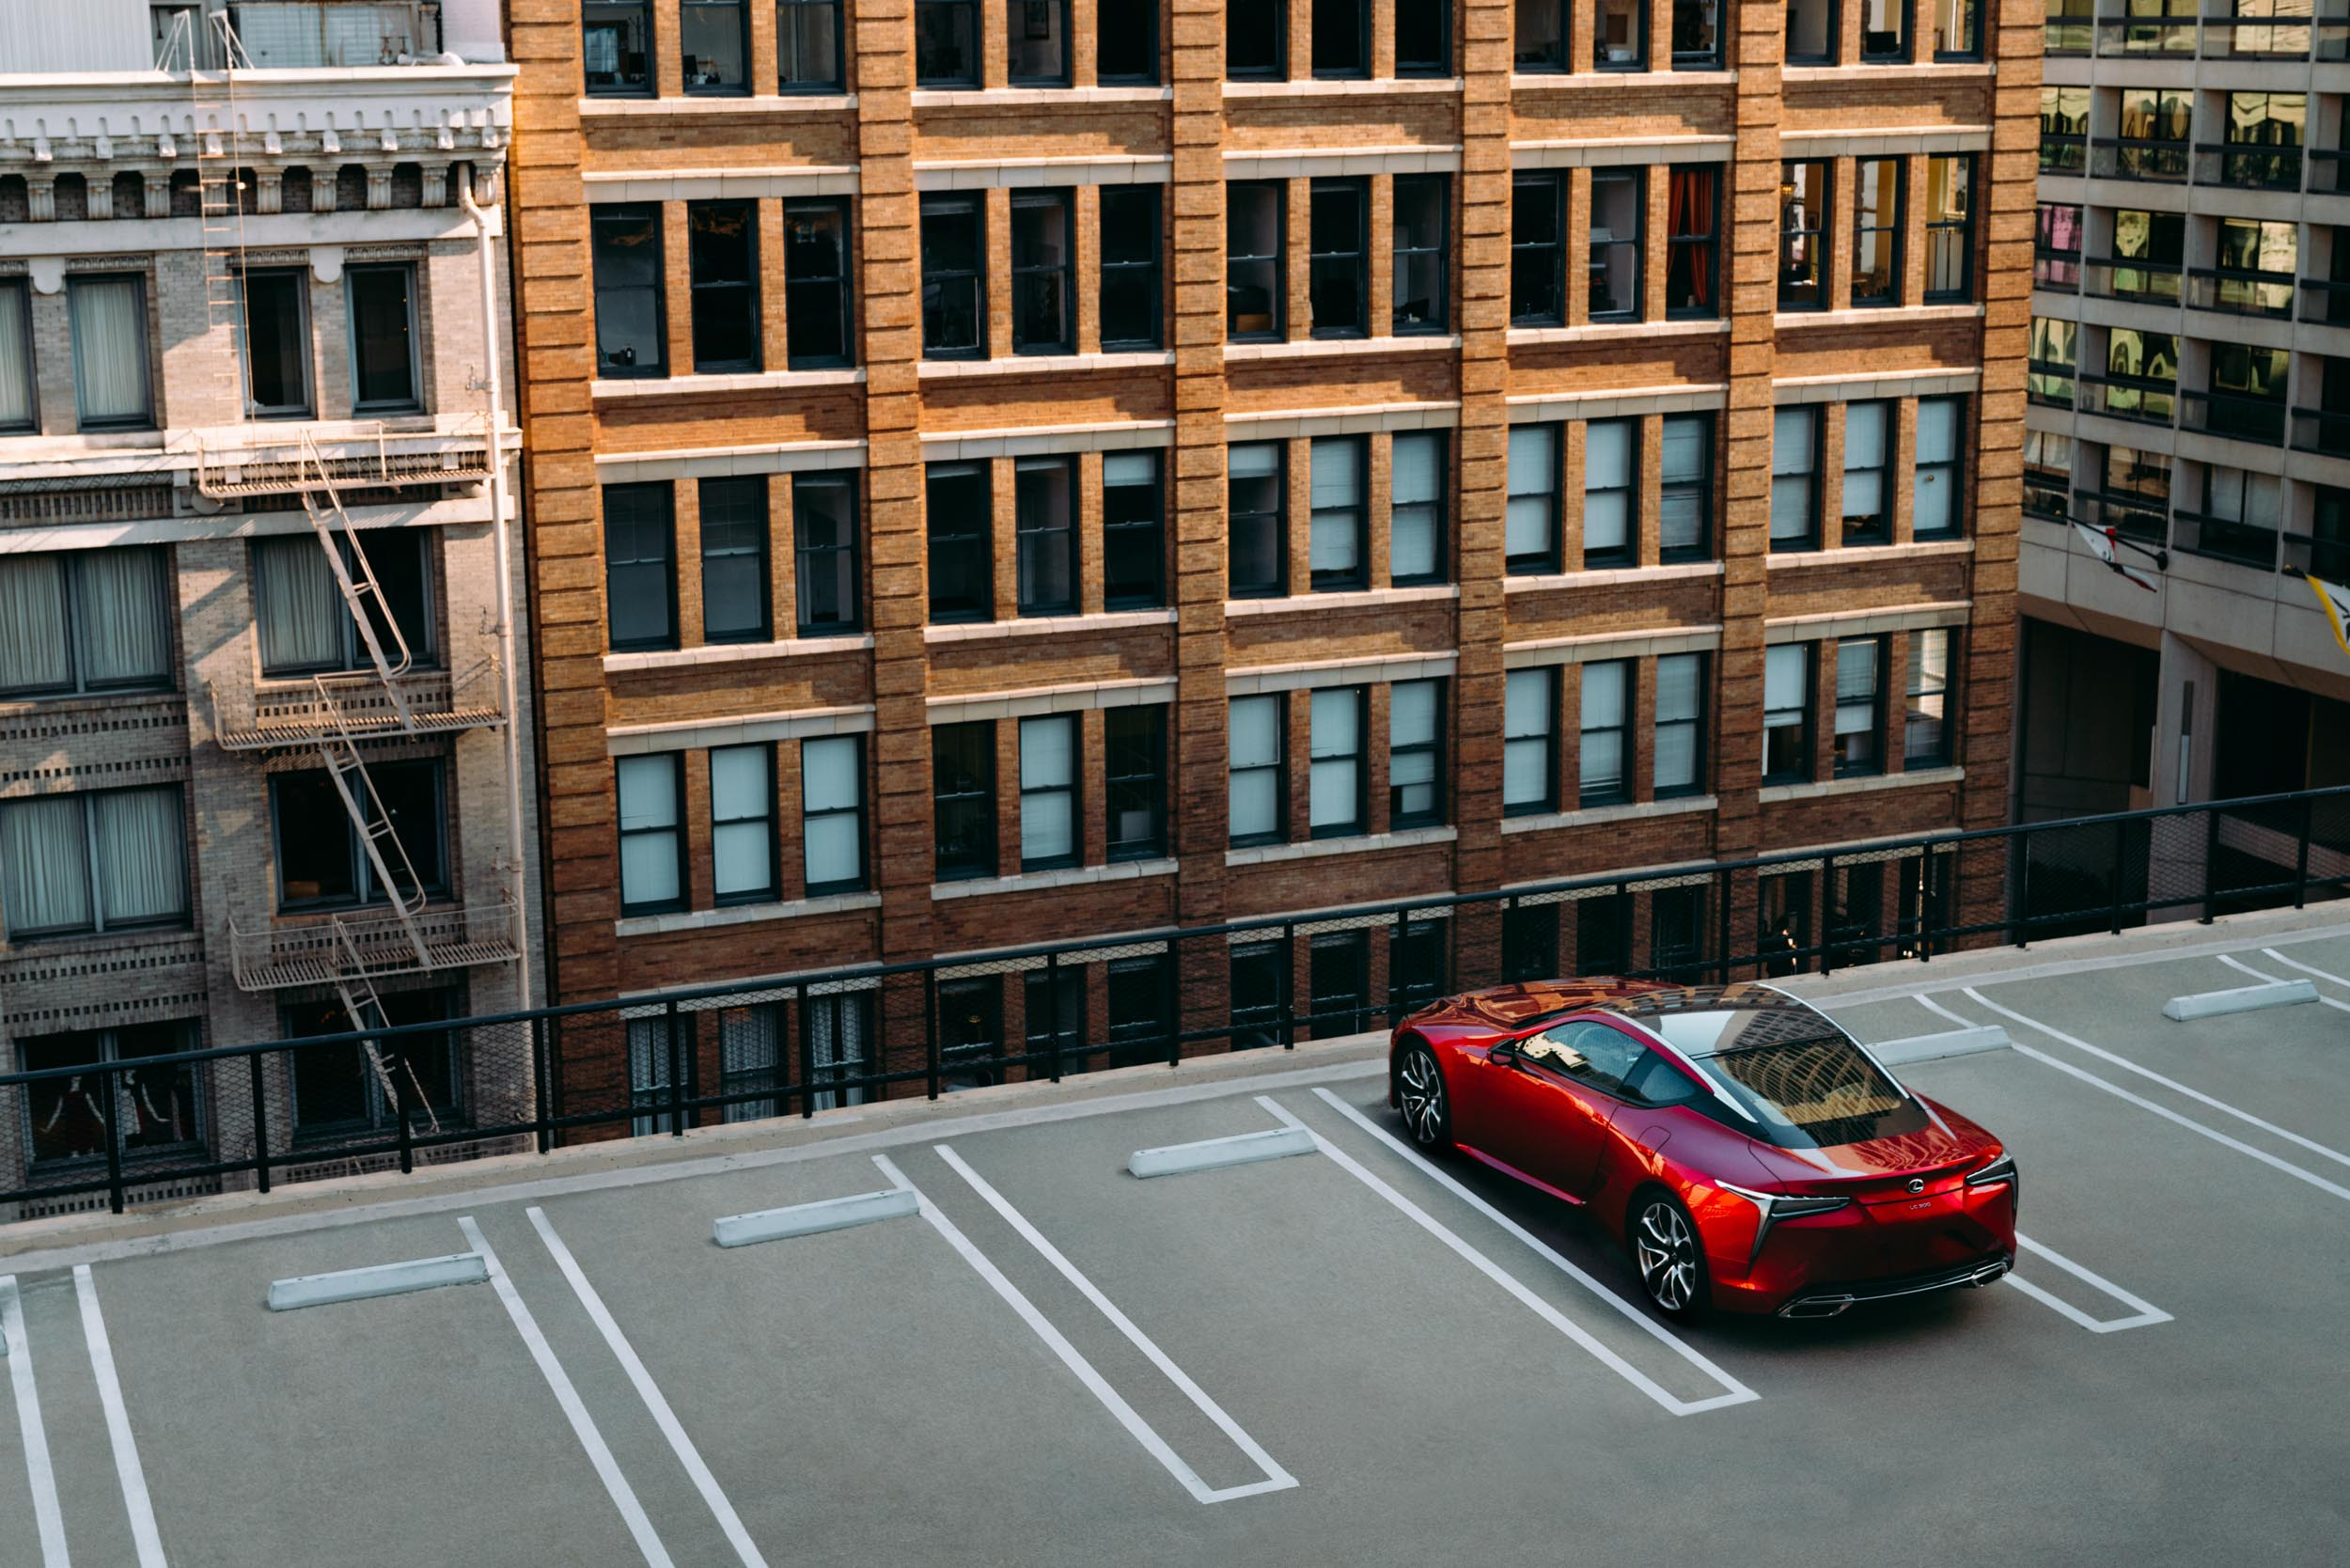 Red Lexus LC on parking garage in San Francisco